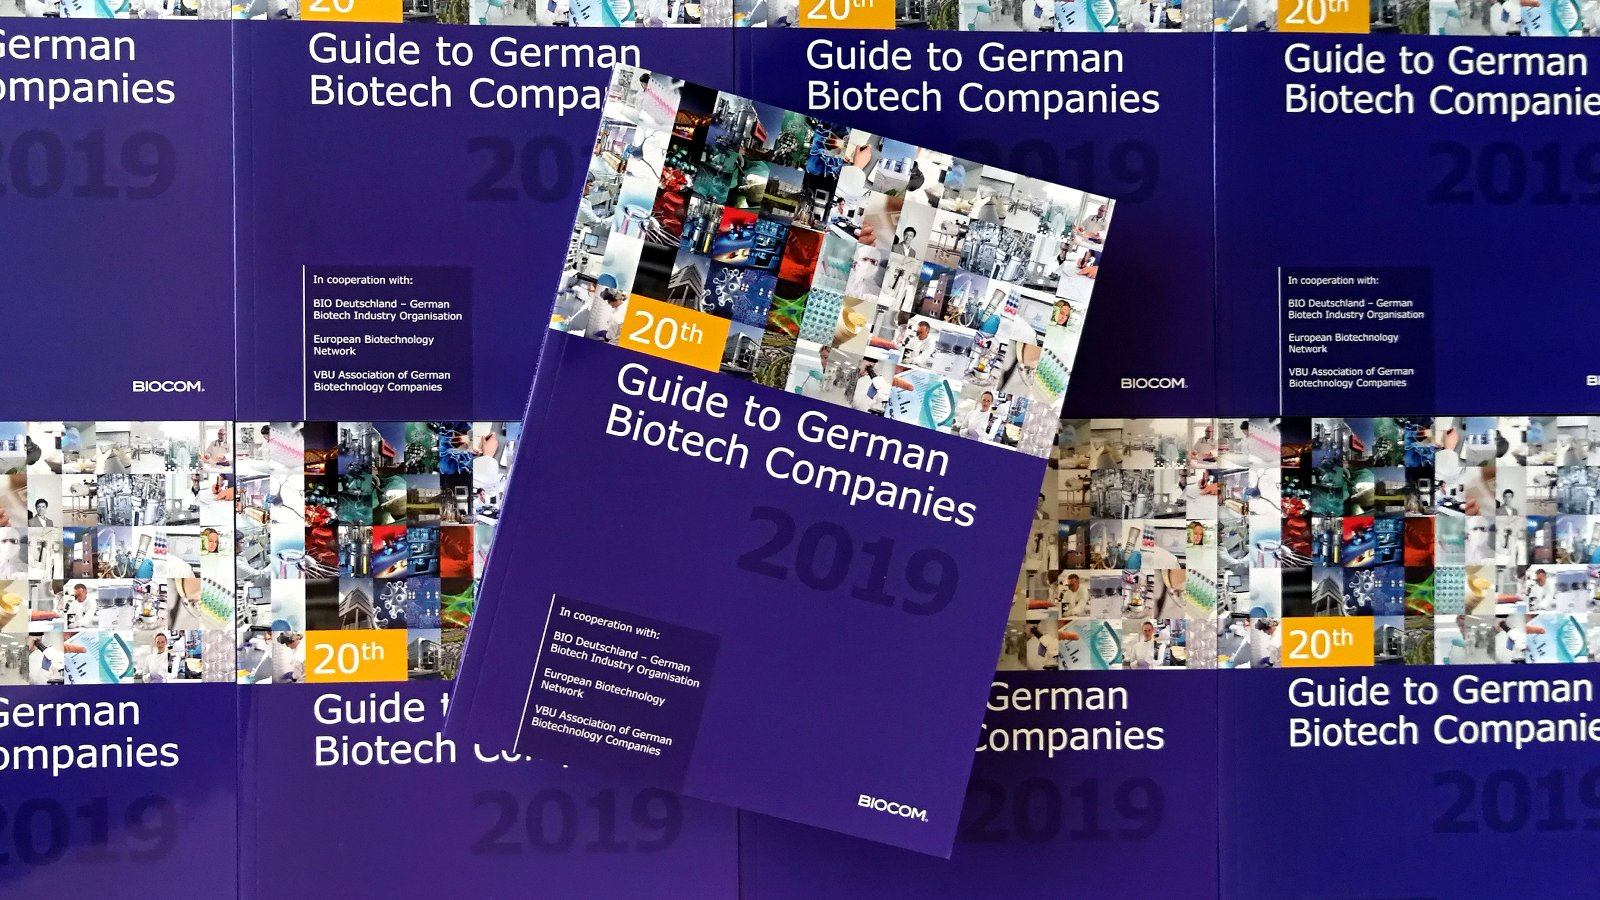 Das Cover des 20th Guide to German Biotech Companies 2019